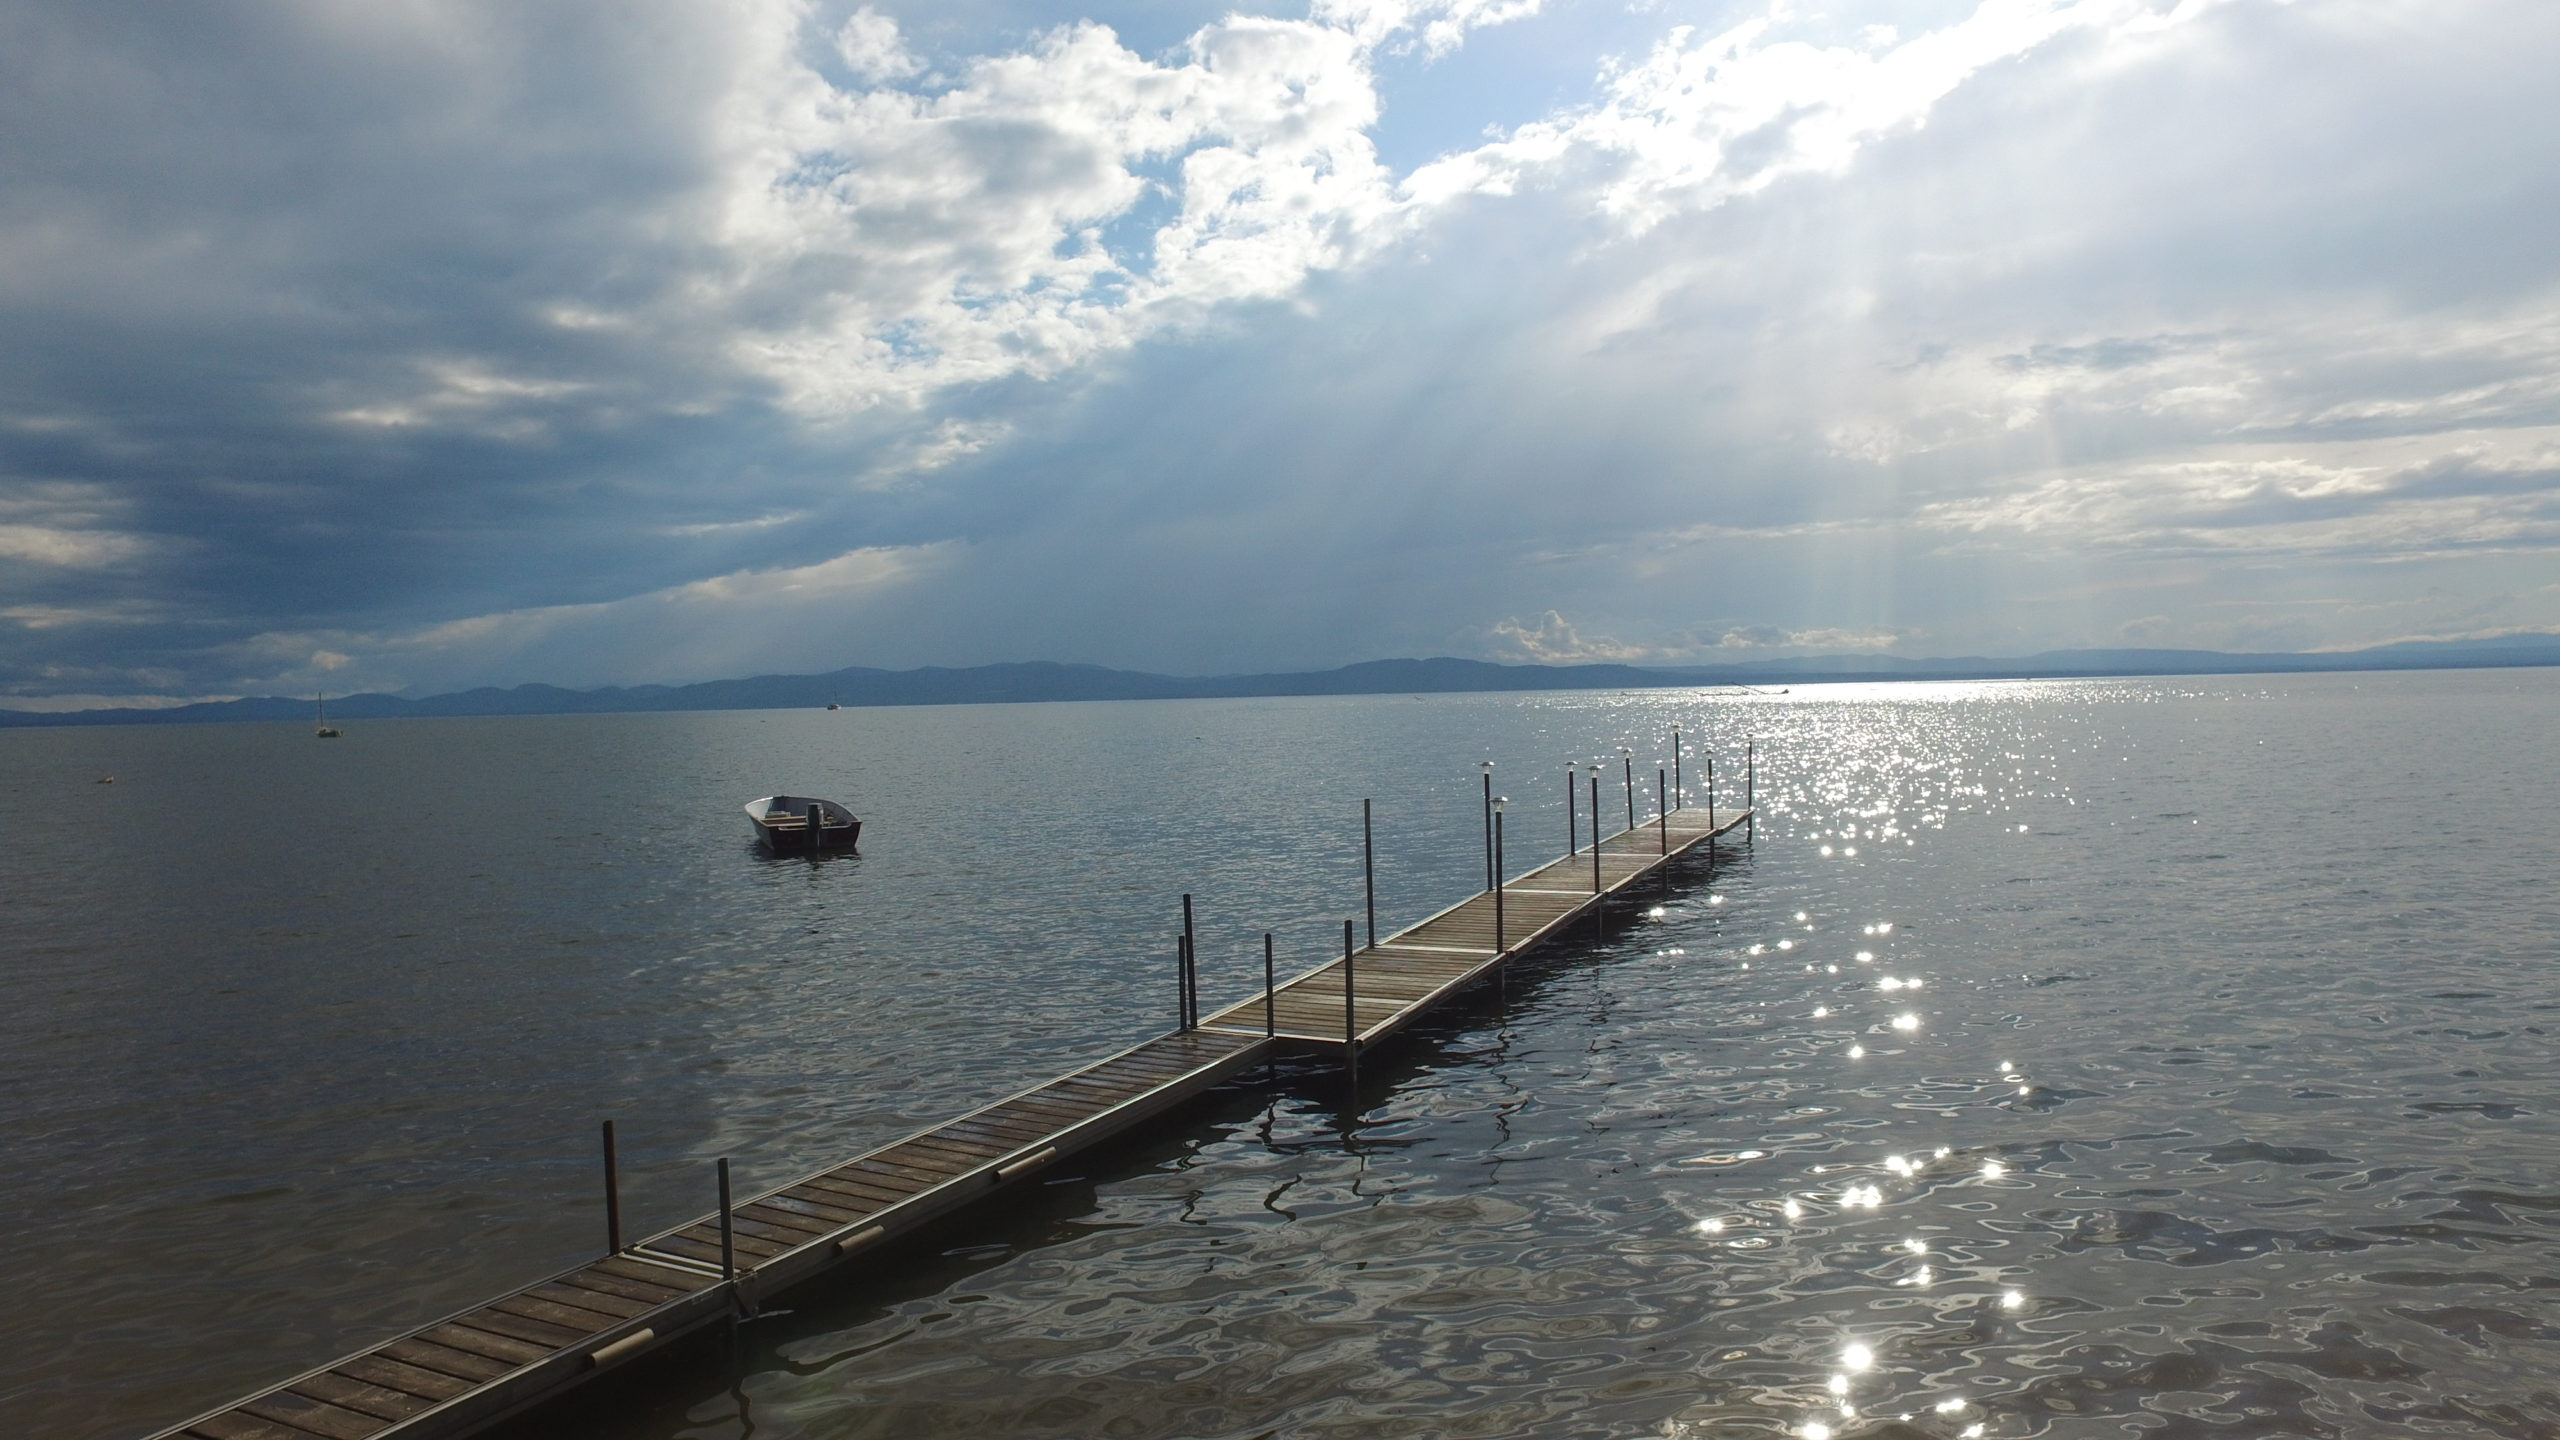 View of the widest section of Lake Champlain from the Auer Family Boathouse